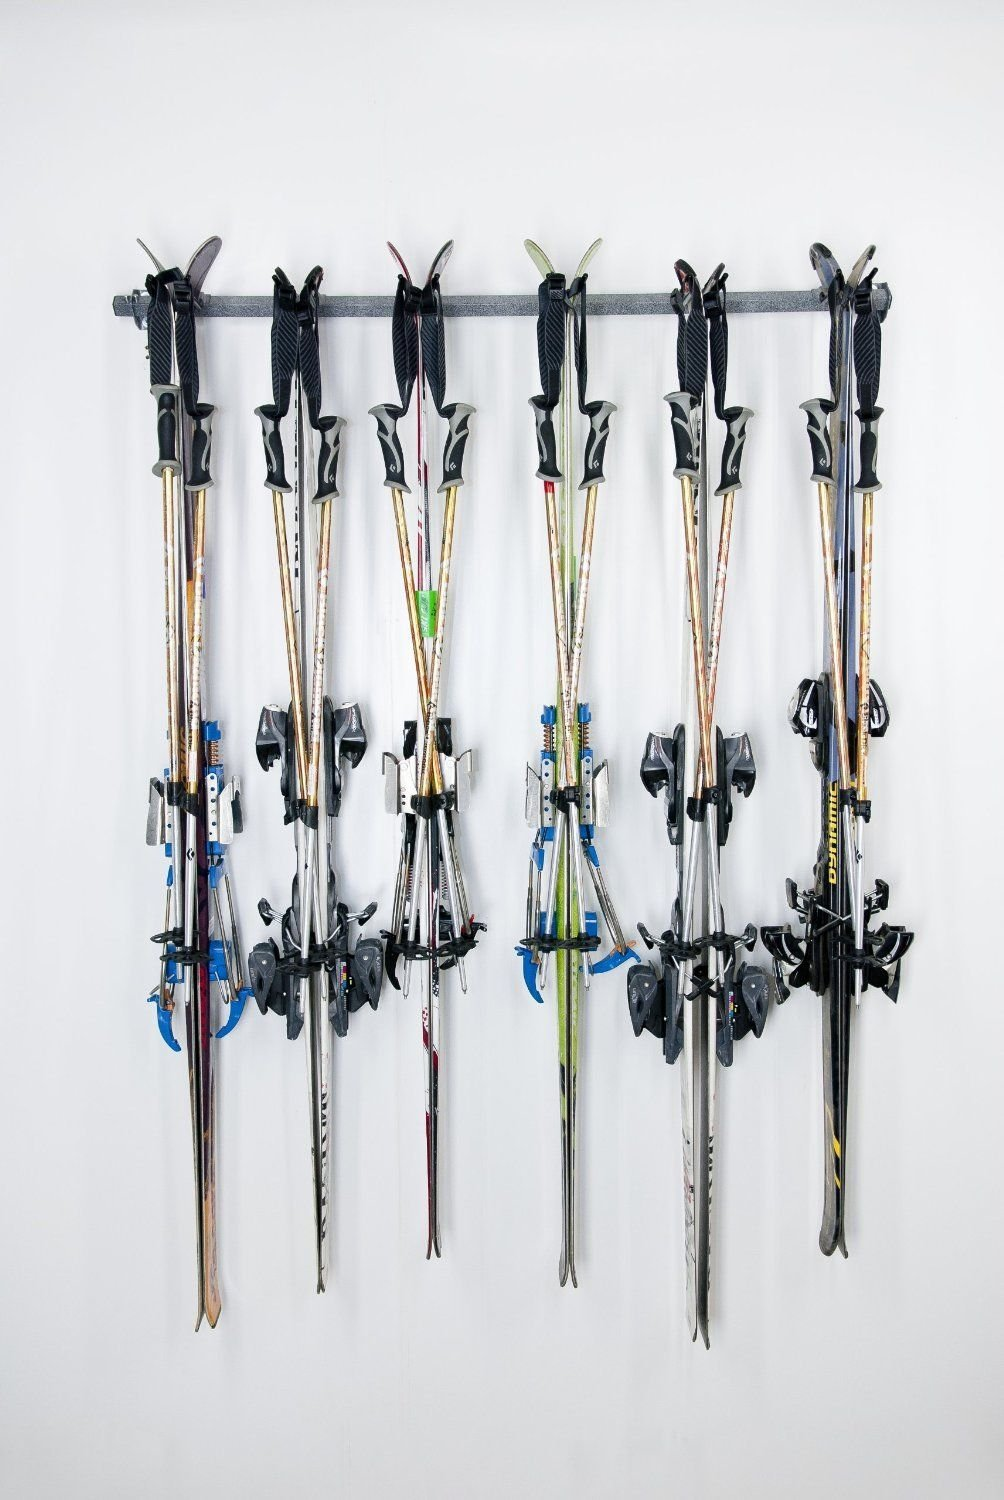 Generic YC-US2-151027-151 <8&2516*1> ce Savenger Hook S Hanger Hook Sport Ski Storage Steel 120lb 6Pair Rack Holder Organizer Space Save Sport Ski S by Generic